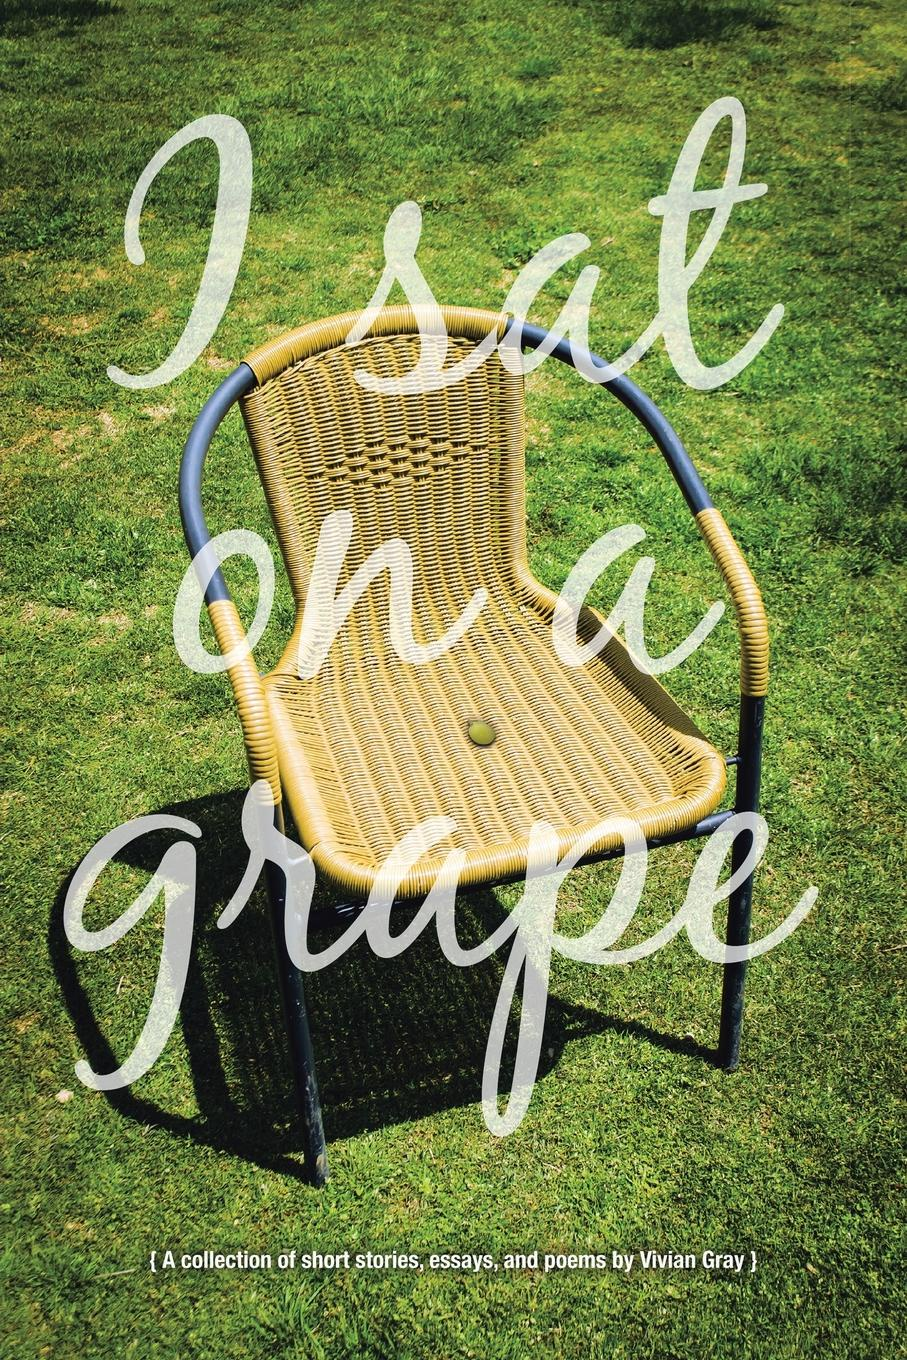 Vivian Gray I Sat on a Grape. A collection of short stories, essays and poems brittany tempel pretty bird a collection of poems and short stories